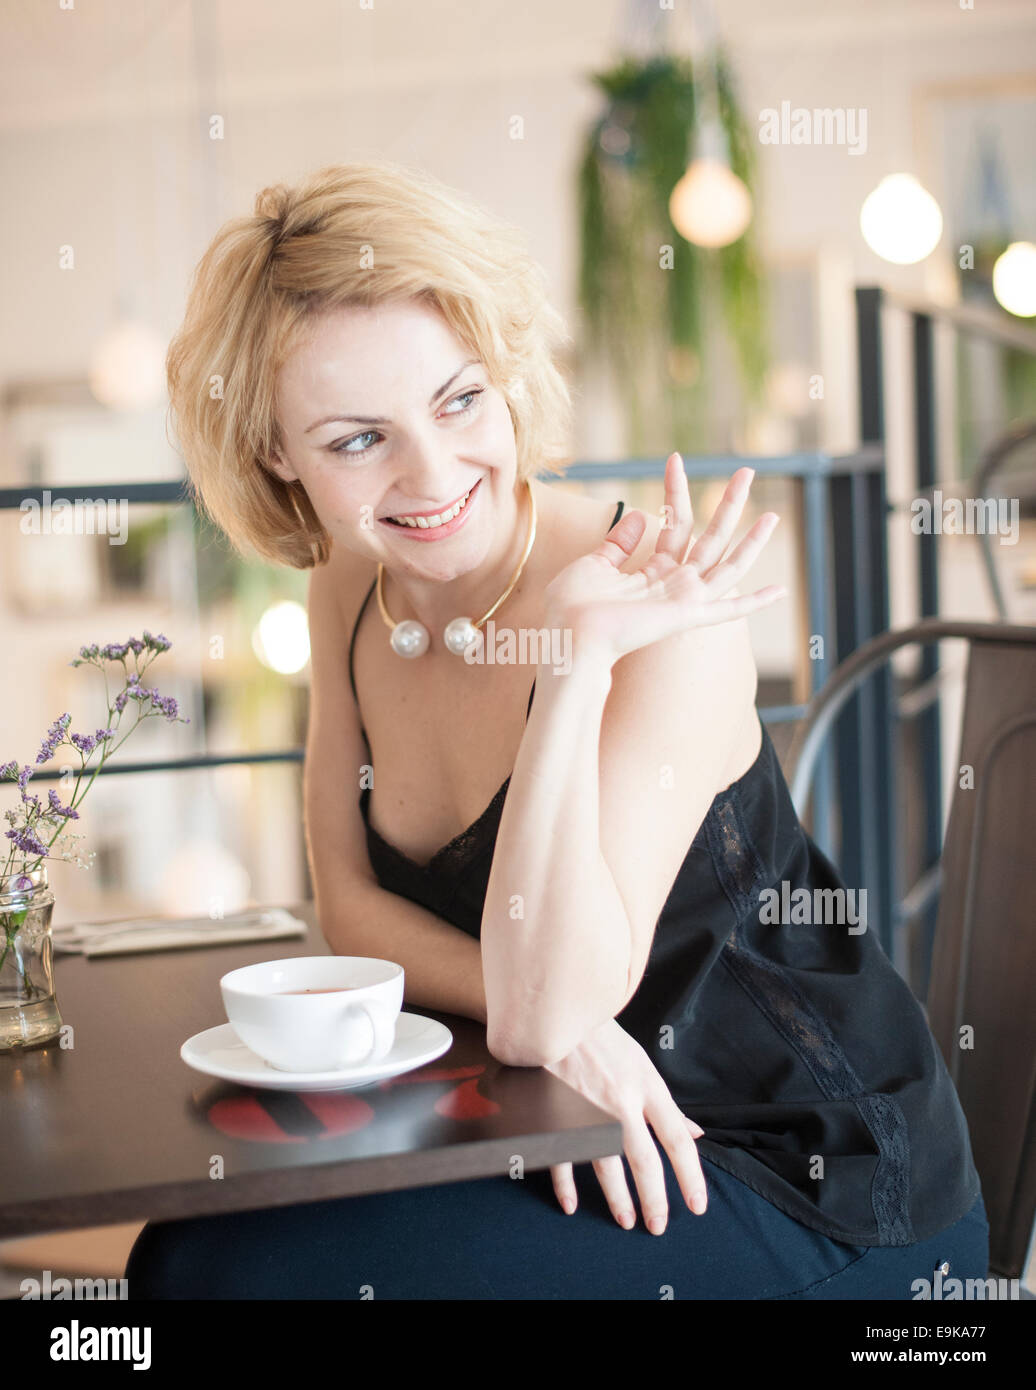 Happy young woman waving at restaurant table - Stock Image